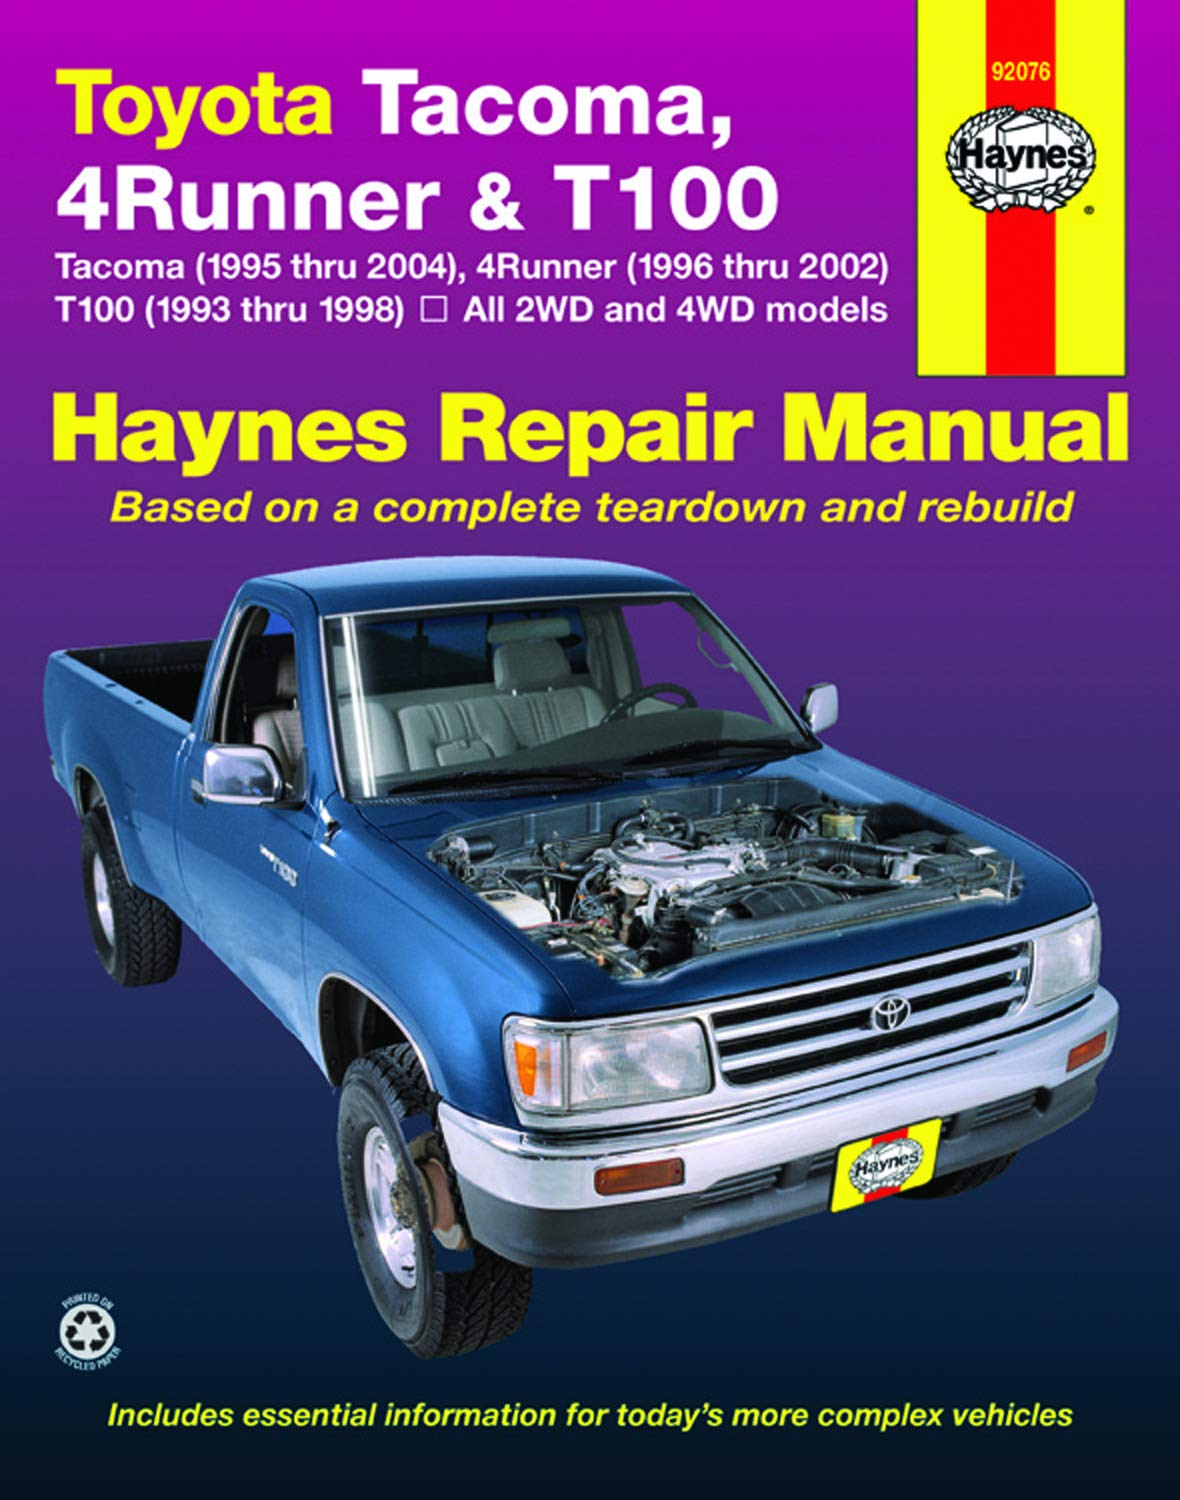 Toyota Tacoma, 4Runner & T100 Haynes Repair Manual: All 2WD and 4WD models